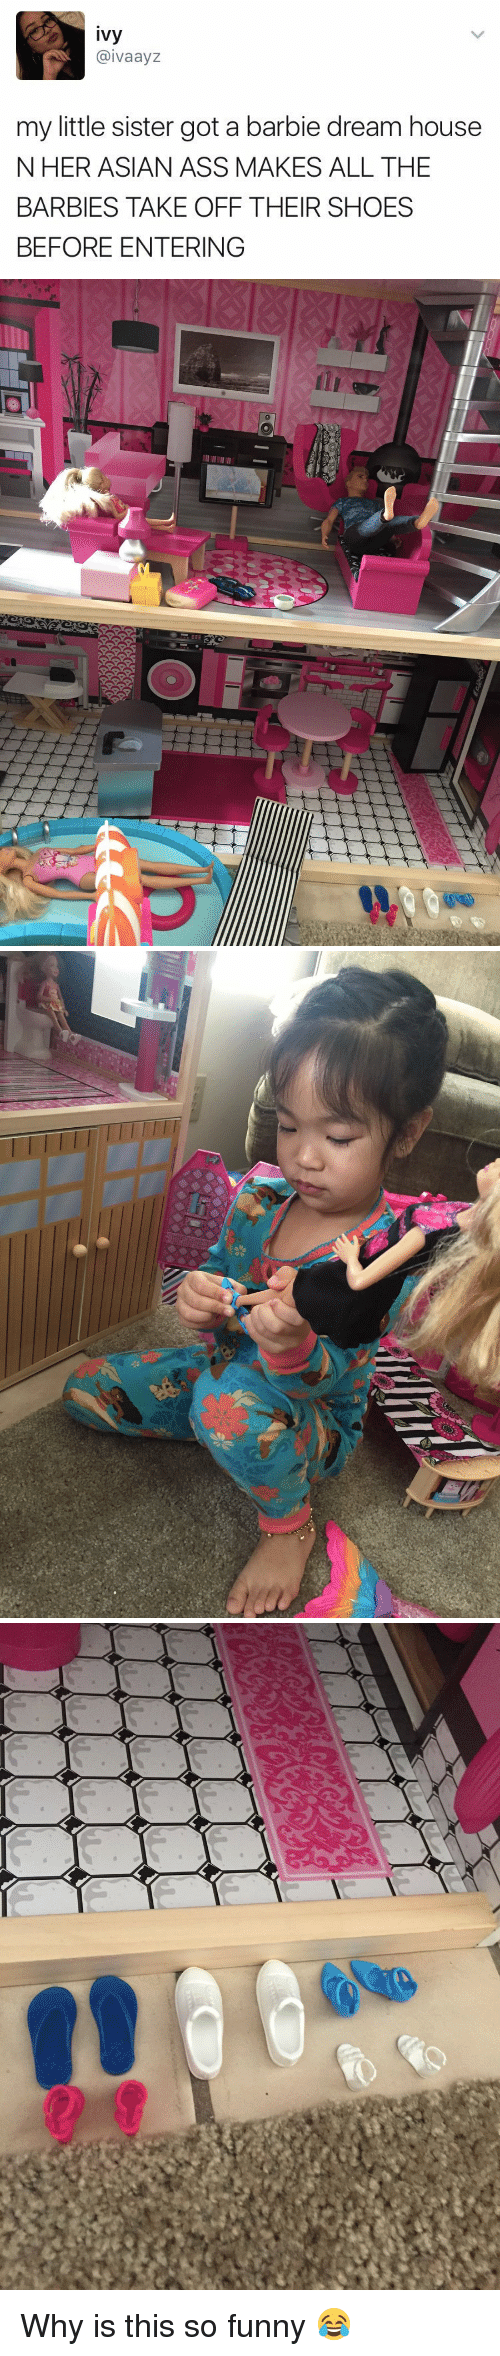 barbi: ivy  IV aaVZ  my little sister got a barbie dream house  N HER ASIAN ASS MAKES ALL THE  BARBIES TAKE OFF THEIR SHOES  BEFORE ENTERING   N  oO Why is this so funny 😂